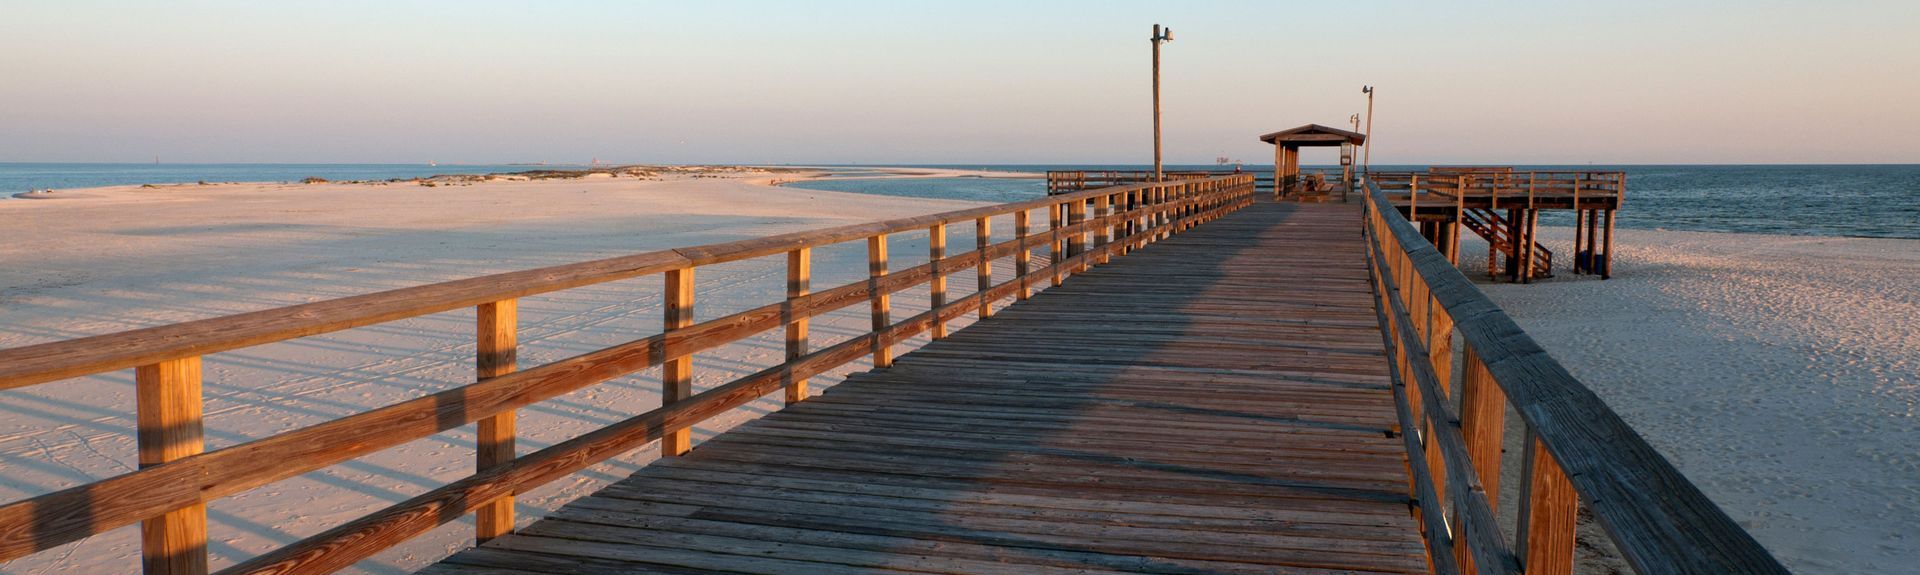 Dauphin Island, Alabama, United States of America